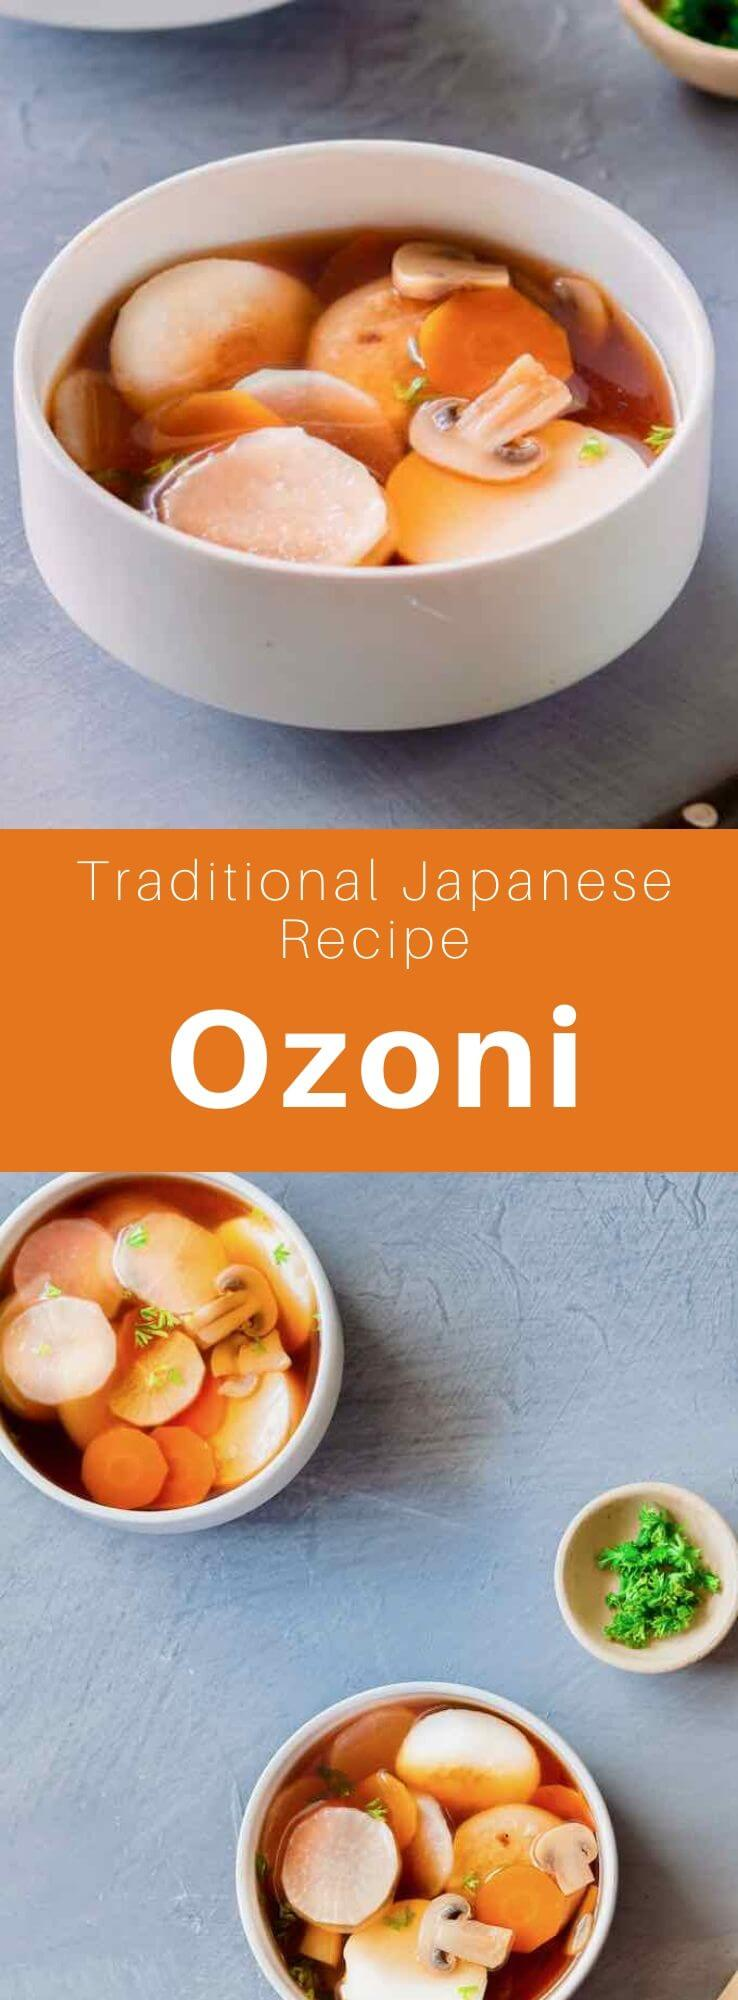 Ozoni or zoni (雑 煮) is a special soup made with mochi (rice cake) traditionally eaten on New Year's Day in Japan. #Japan #Japanese #JapaneseFood #JapaneseCuisine #JapaneseRecipe #AsianCuisine #AsianFood #AsianCuisine #WorldCuisine #196flavors